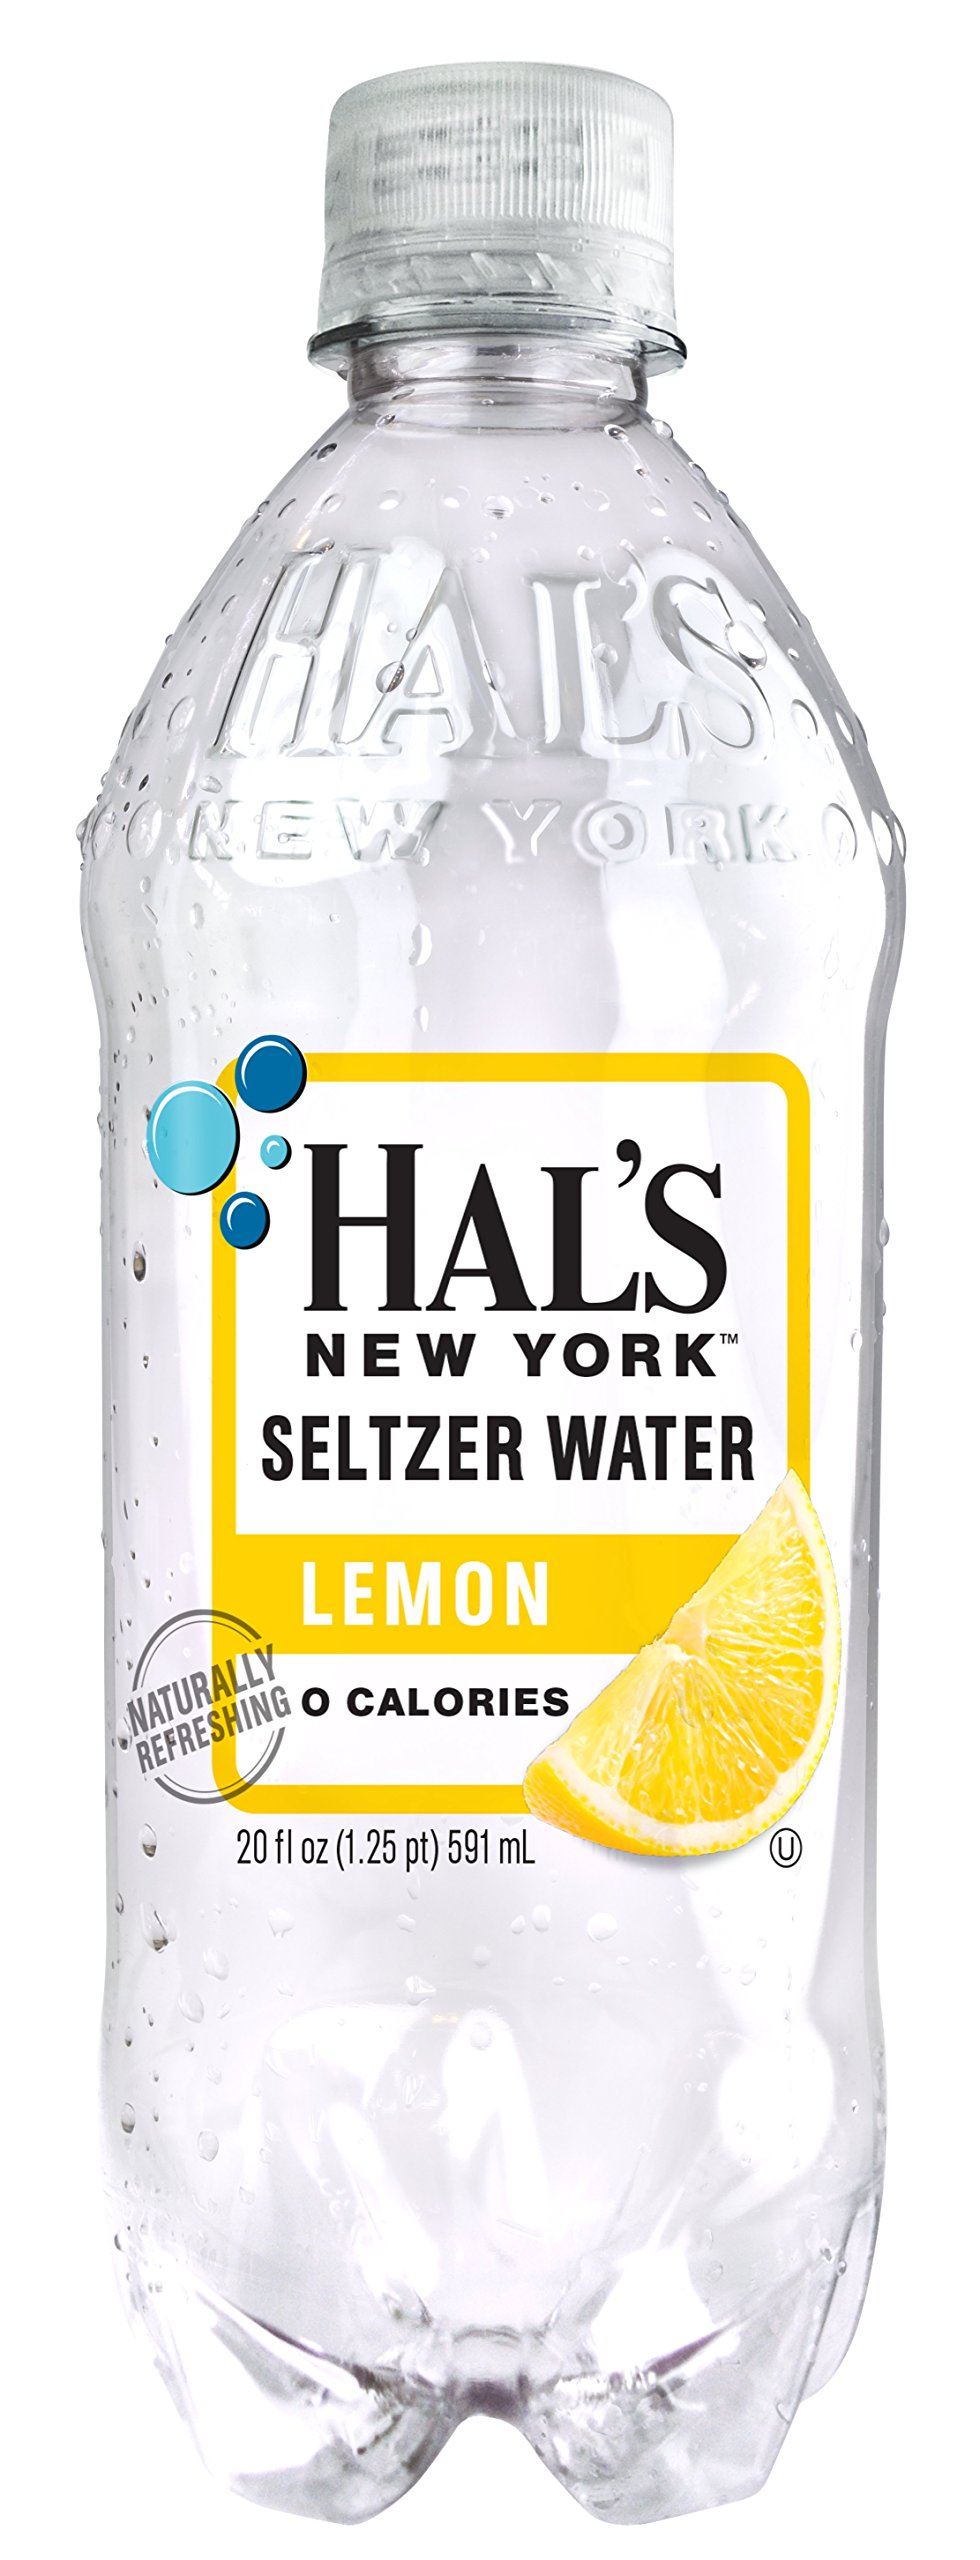 Hal's NY Seltzer Water 20 Oz Bottles (Pack of 24) (Lemon) by Hal's New York